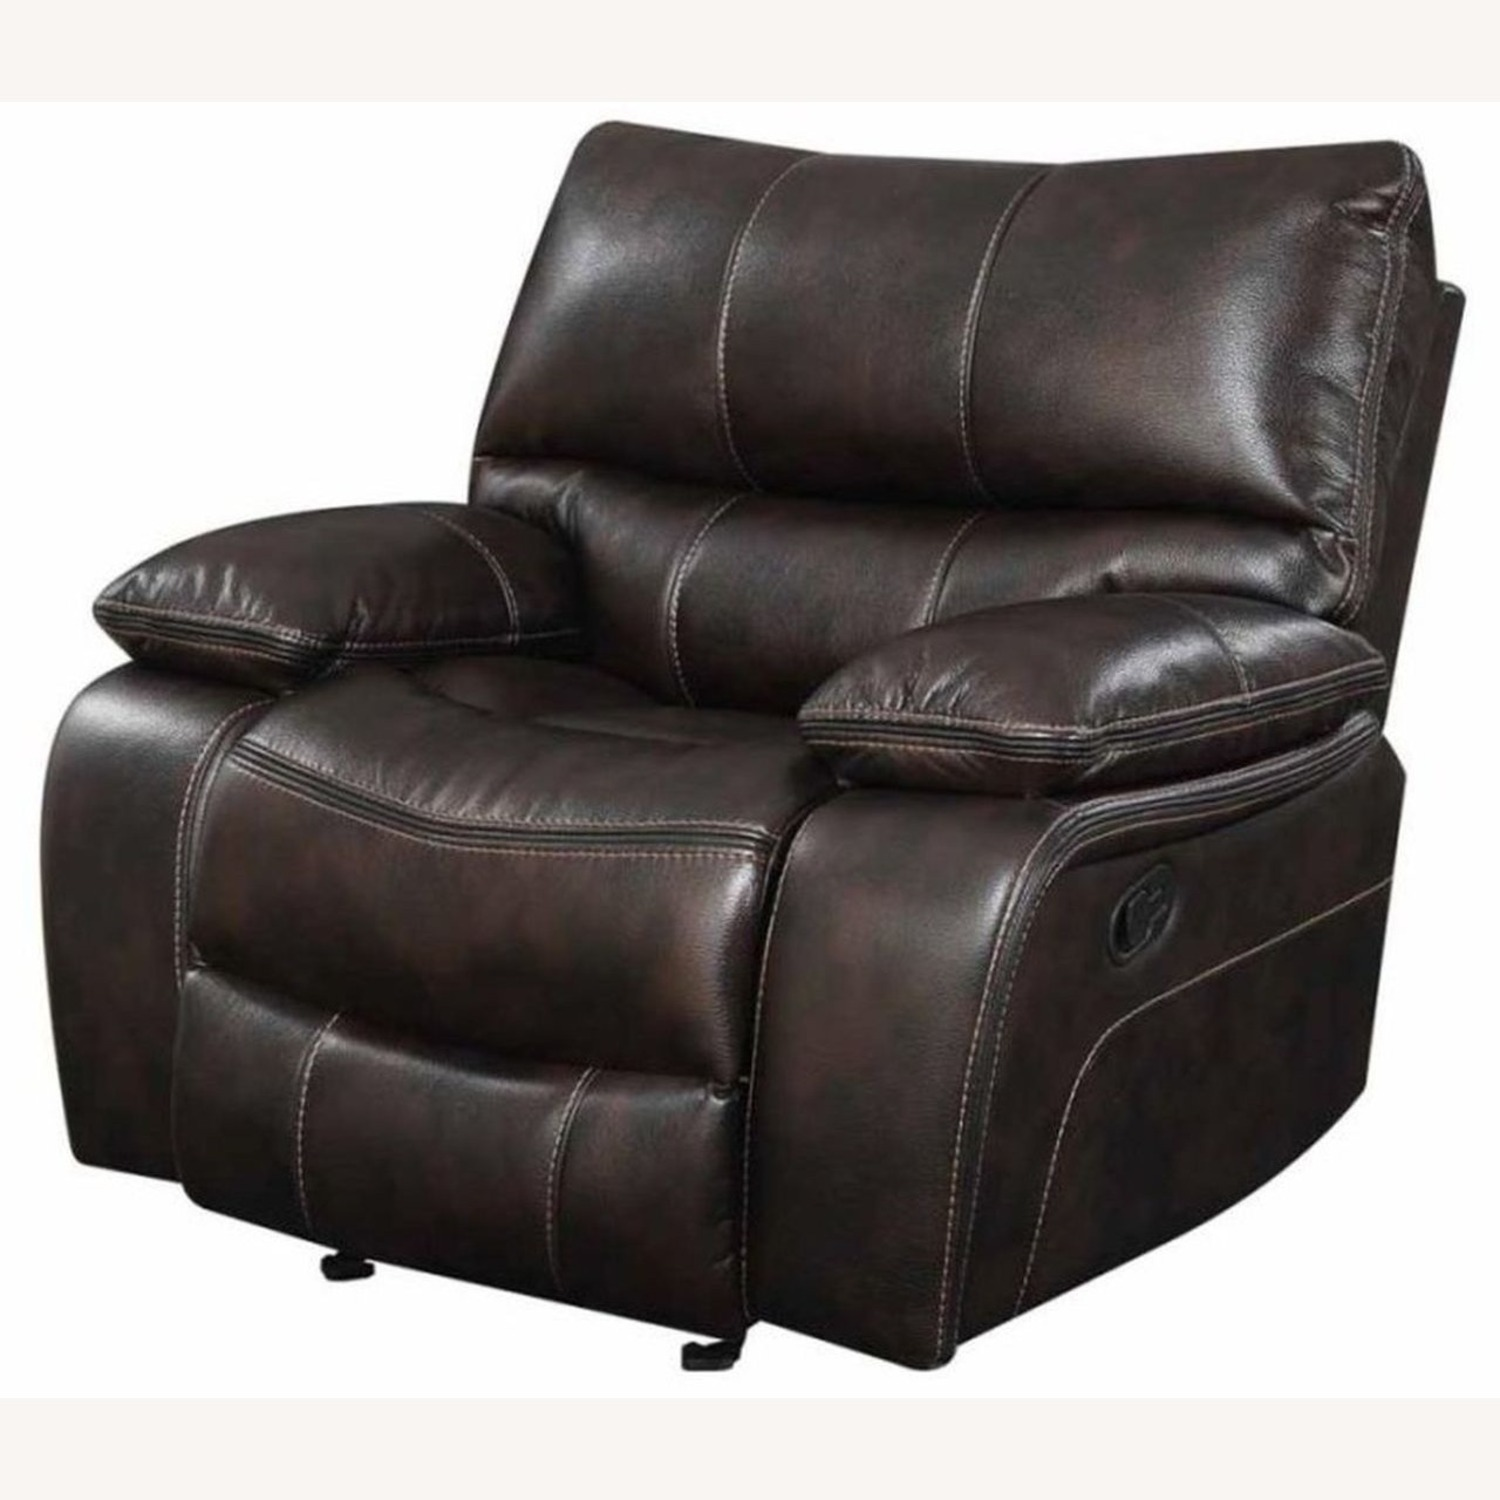 Glider Recliner W/ Scooped Seating In Dark Brown - image-1